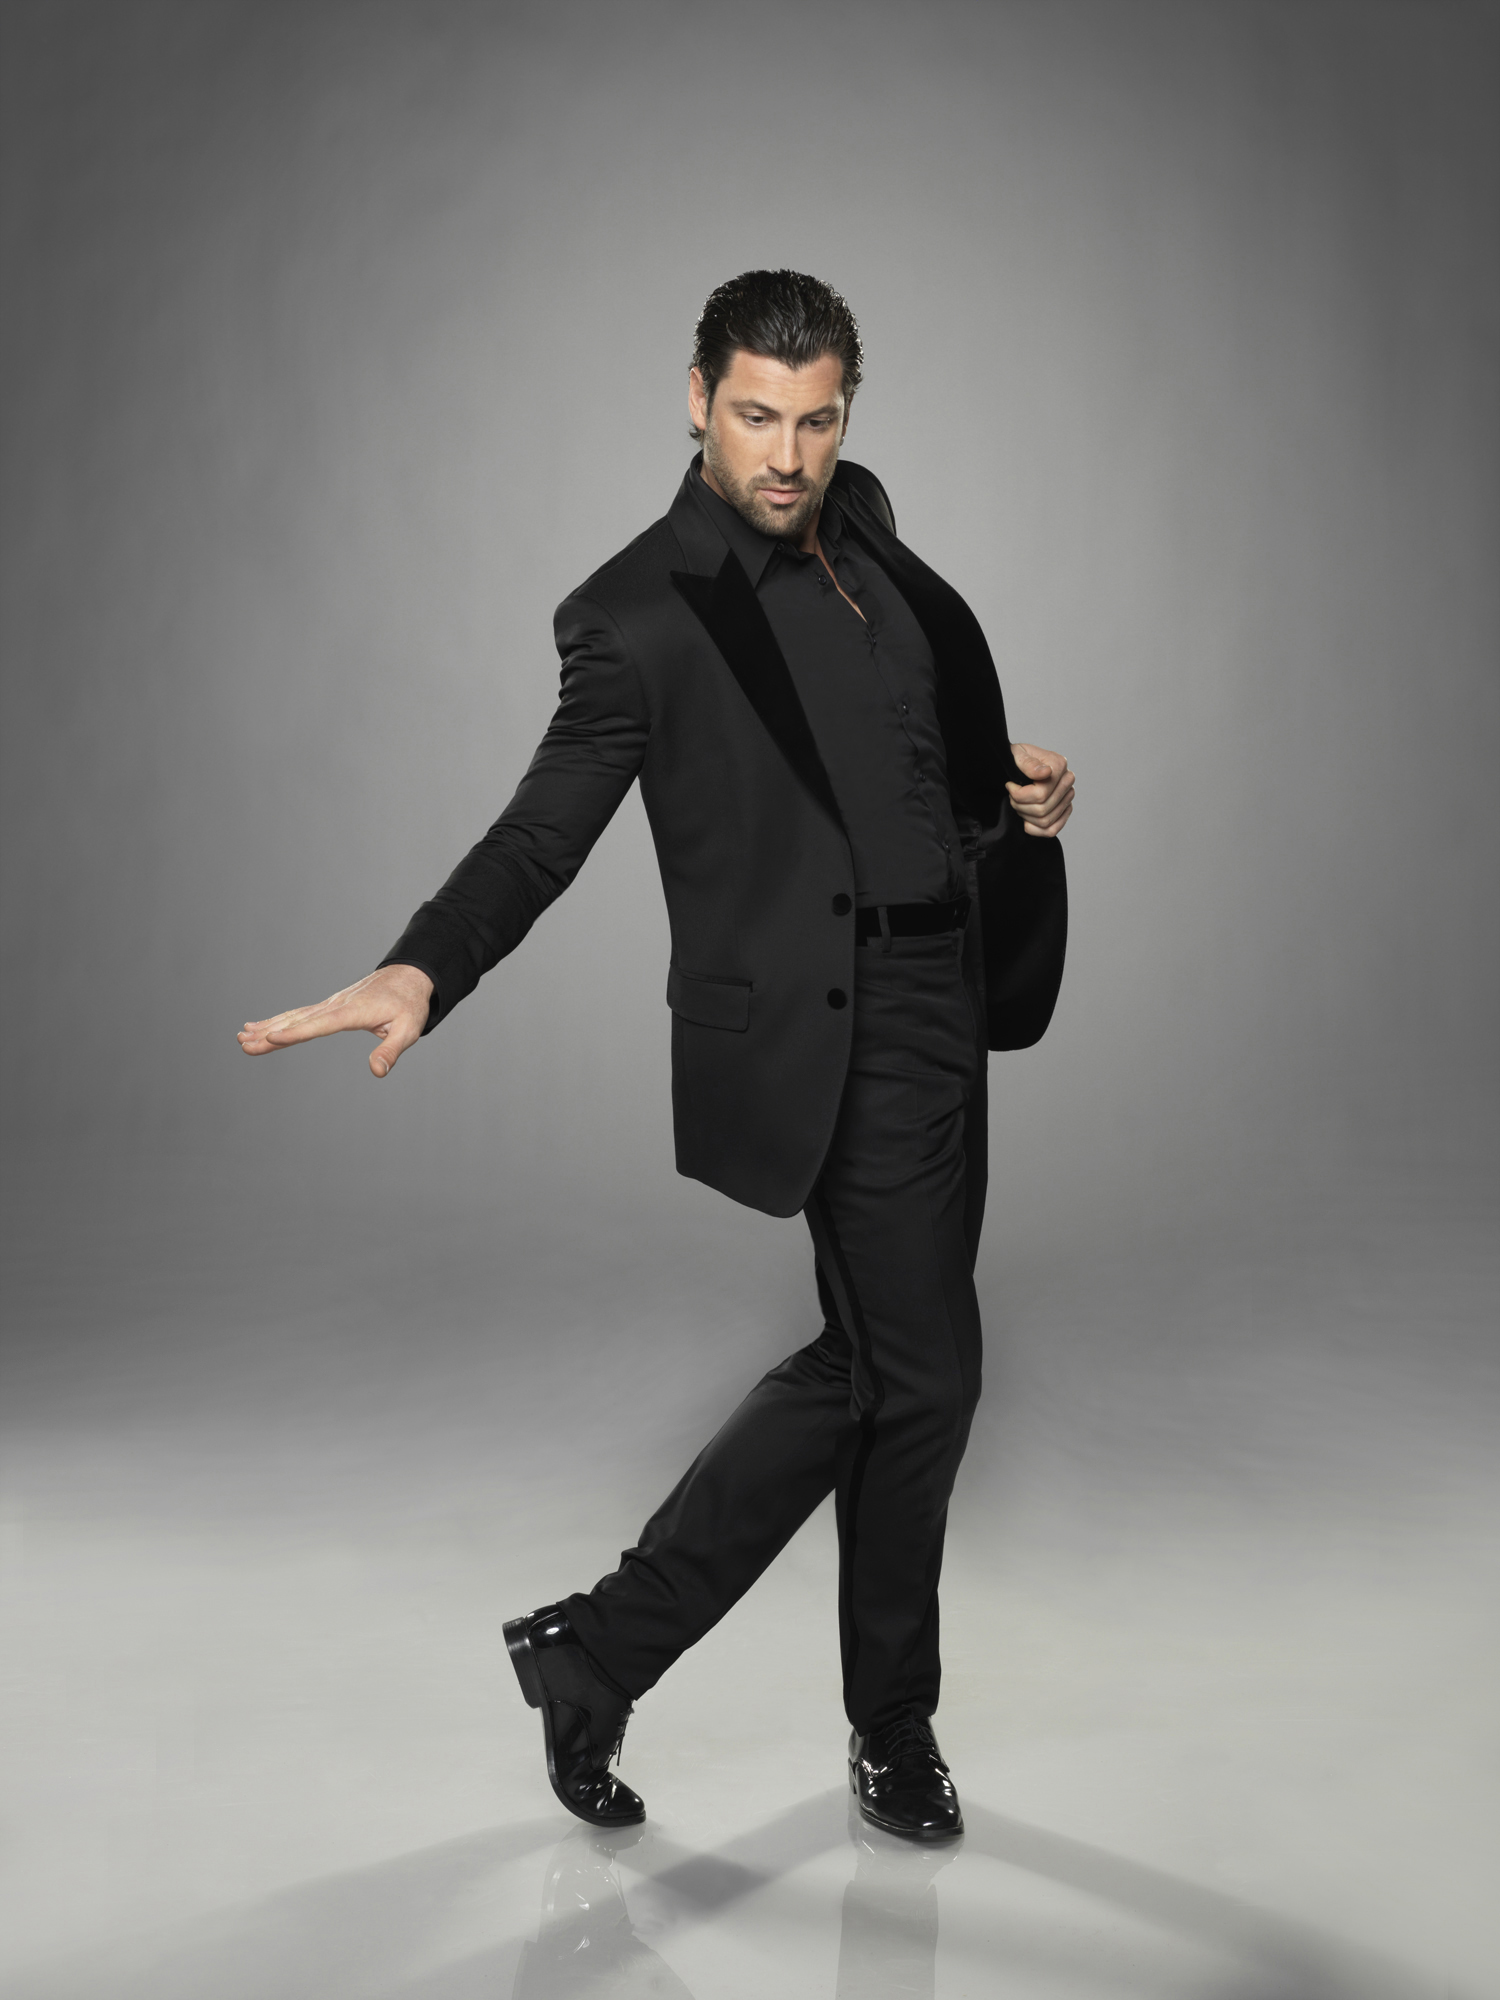 Pure Dancing with the Stars » Maksim Chmerkovskiy